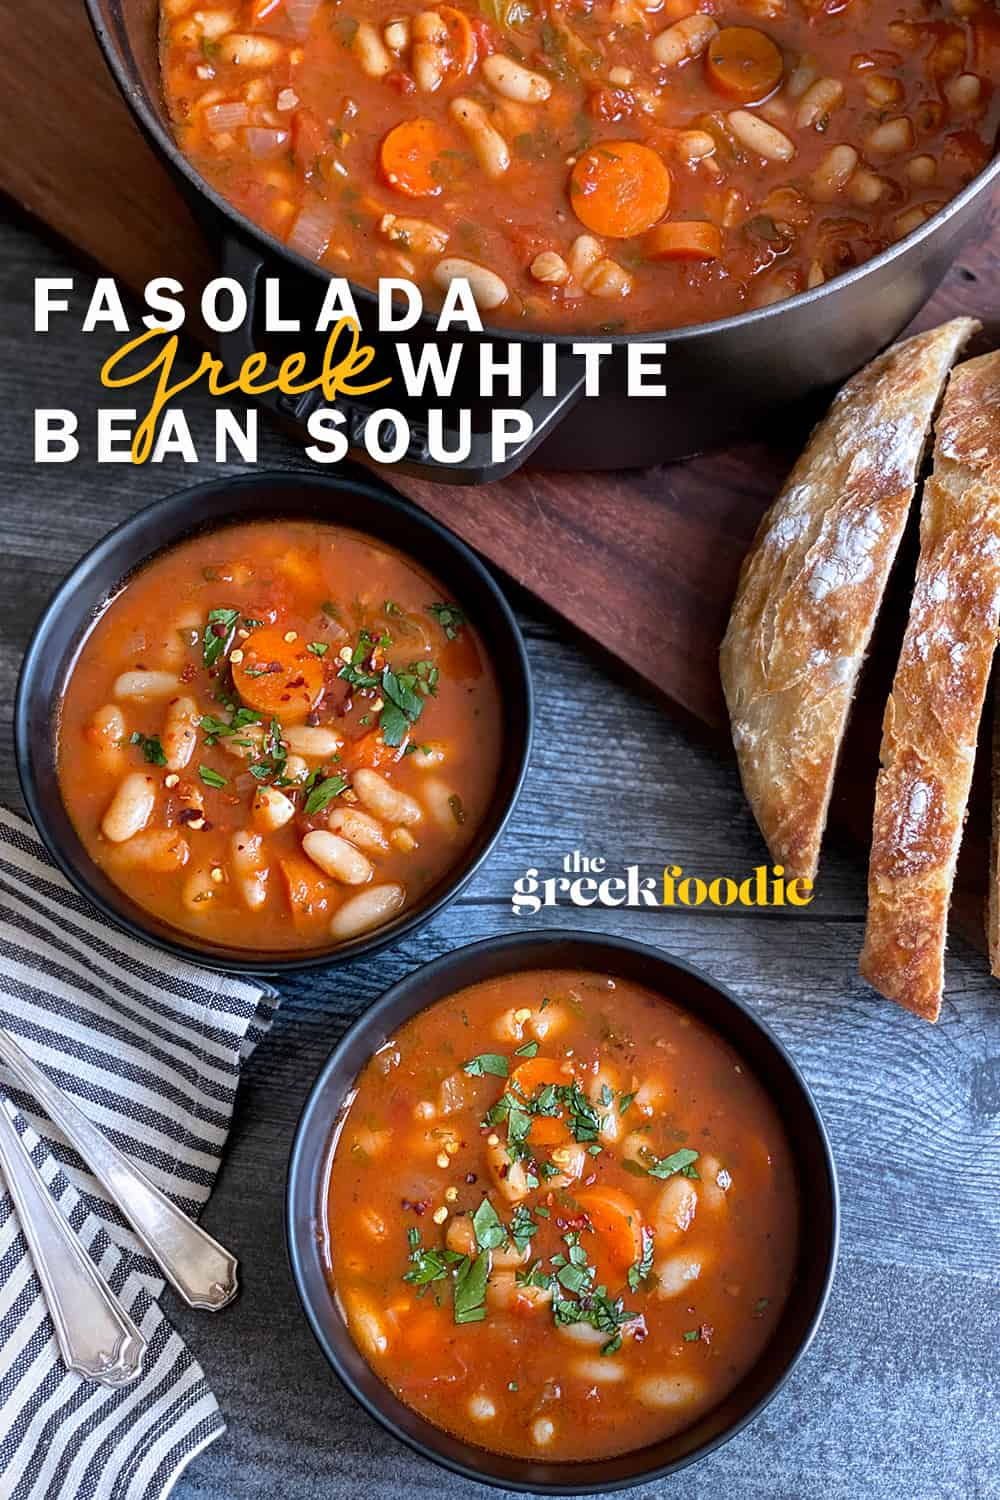 Fasolada - Greek White Bean Soup